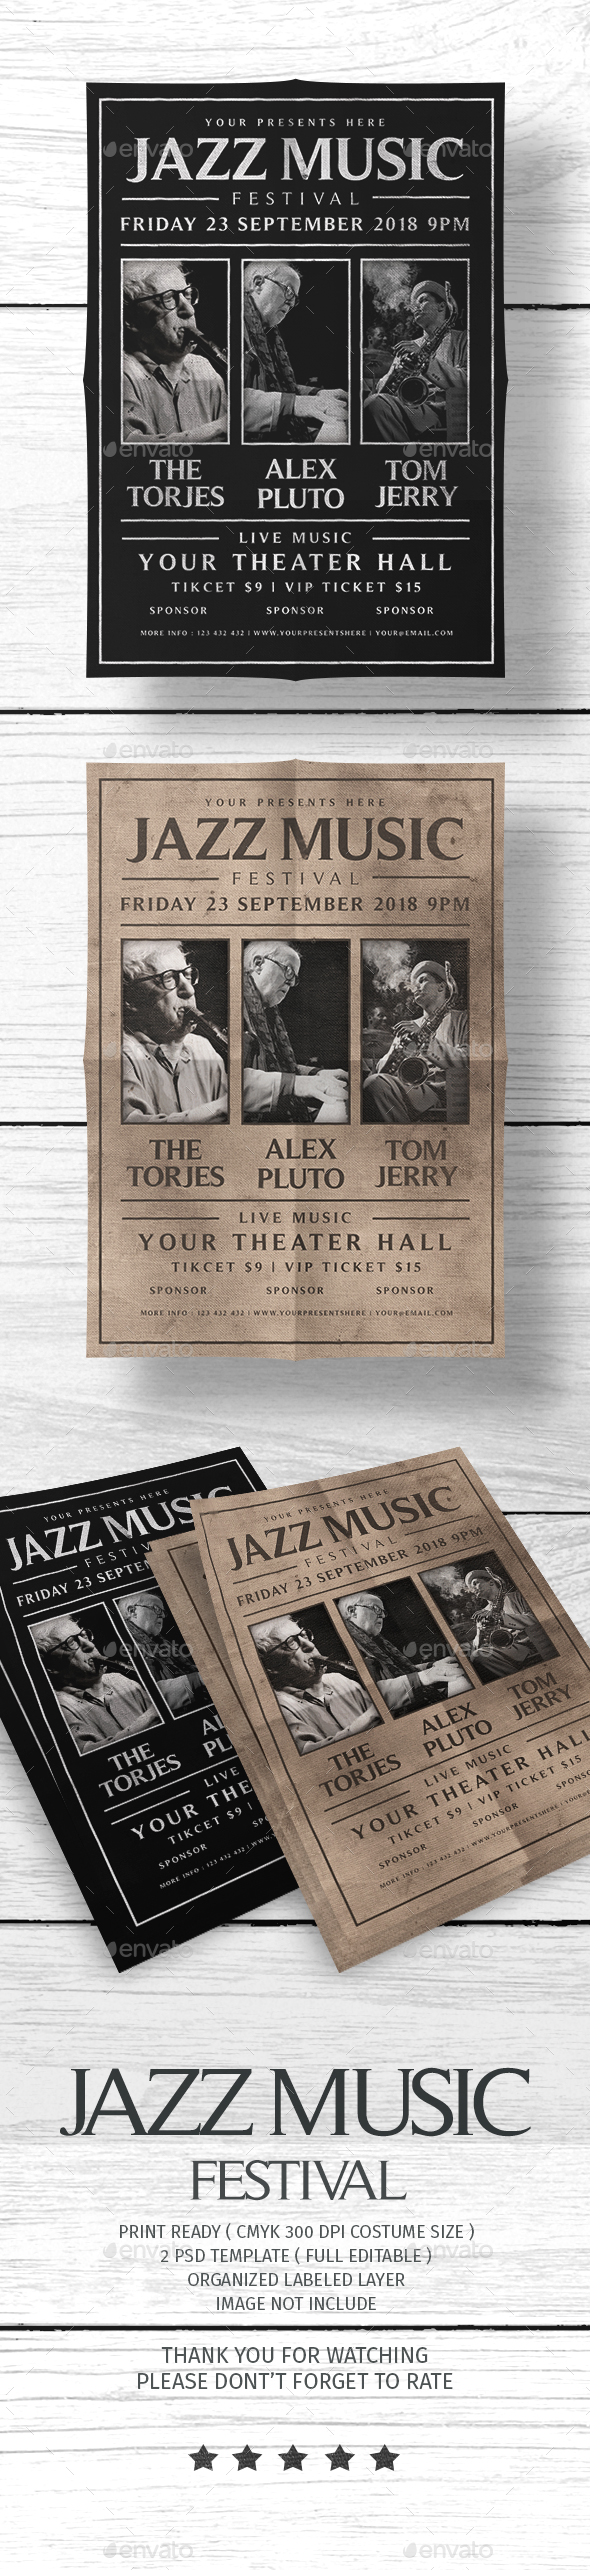 Jazz Music Festival Flyer - Concerts Events